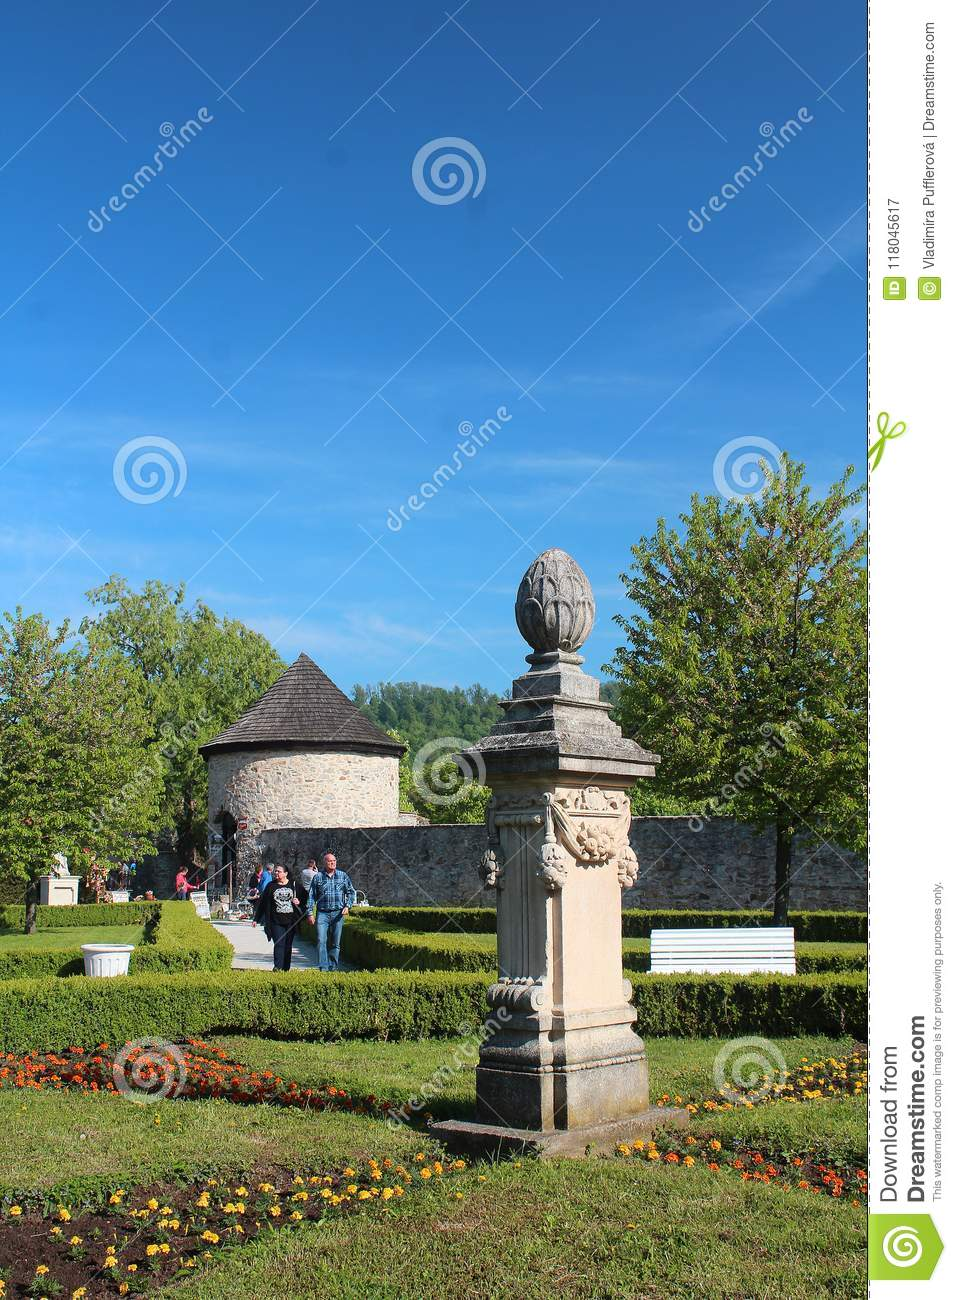 Beautiful Parks And Gardens   Ornamental Statue, Hedges And Flower Beds At  Historical Garden Of